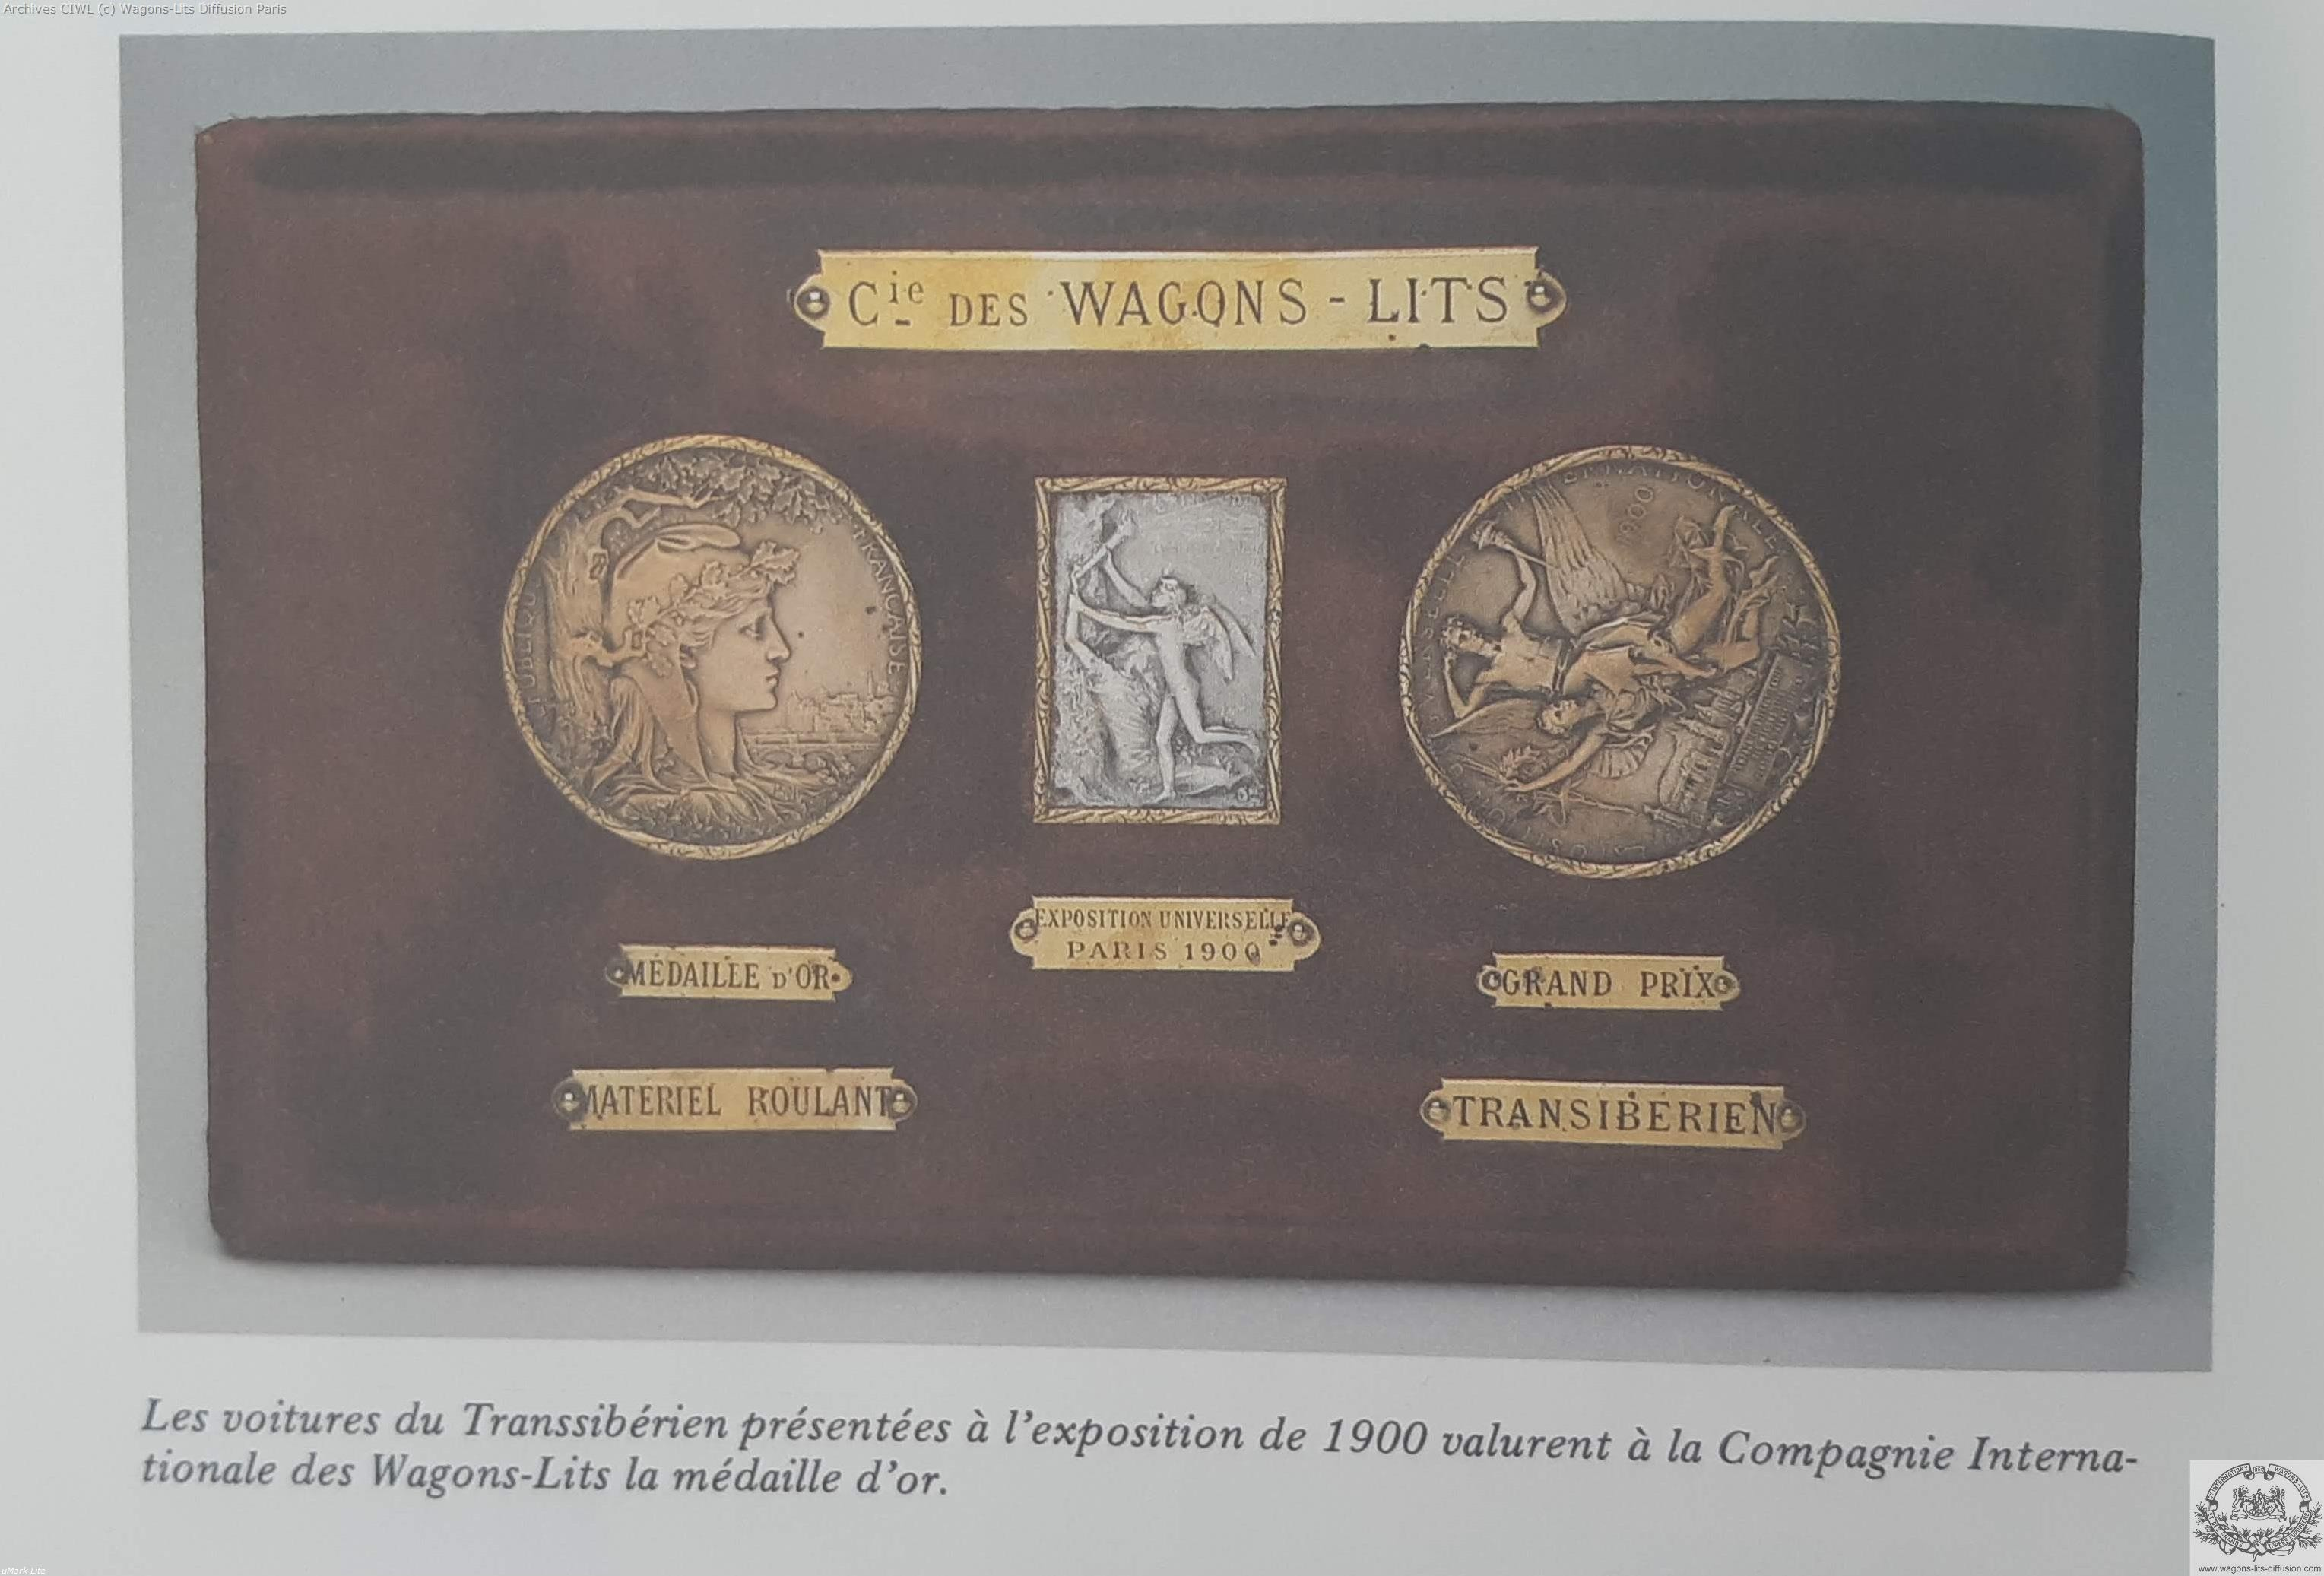 Wl medaille expo universelle 1900 transsiberien